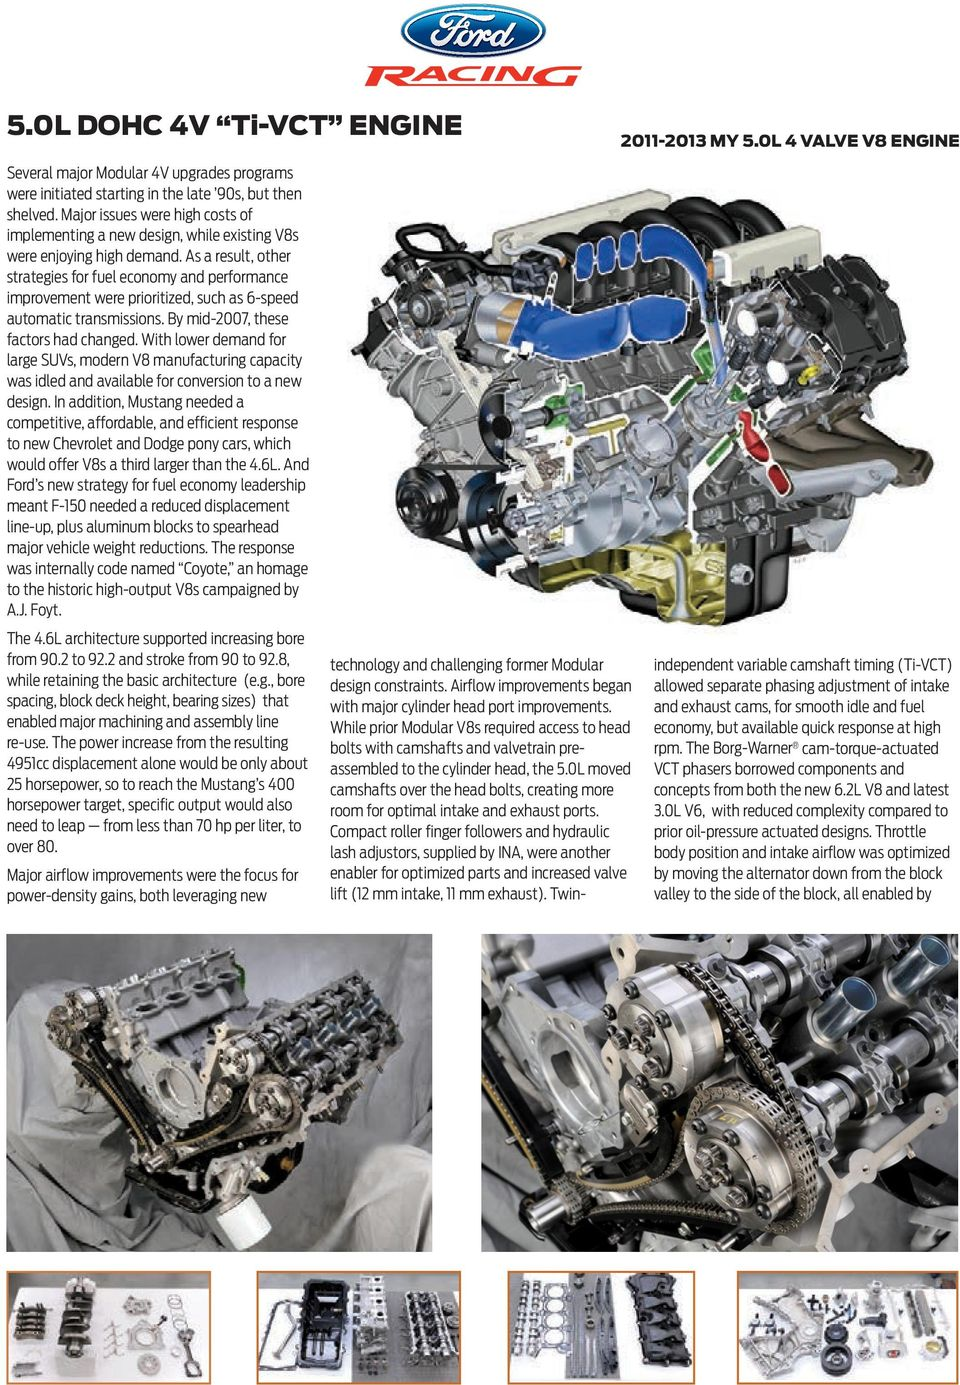 Four Cylinder Engine Section Pdf 1986 Porsche Flat 6 Diagram As A Result Other Strategies For Fuel Economy And Performance Improvement Were Prioritized Such